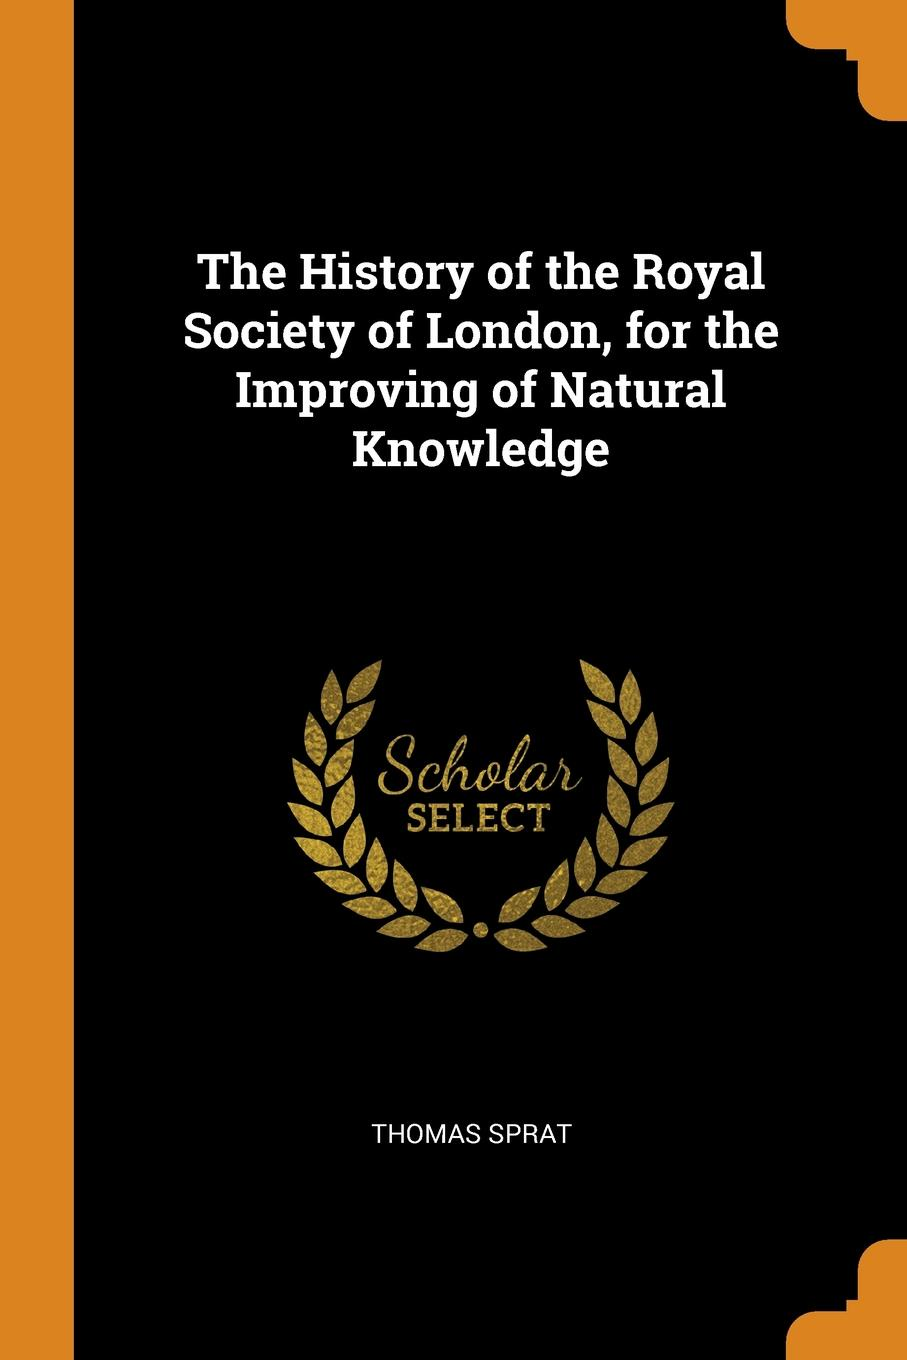 Thomas Sprat The History of the Royal Society of London, for the Improving of Natural Knowledge thomas sprat the history of the royal society of london for the improving of natural knowledge